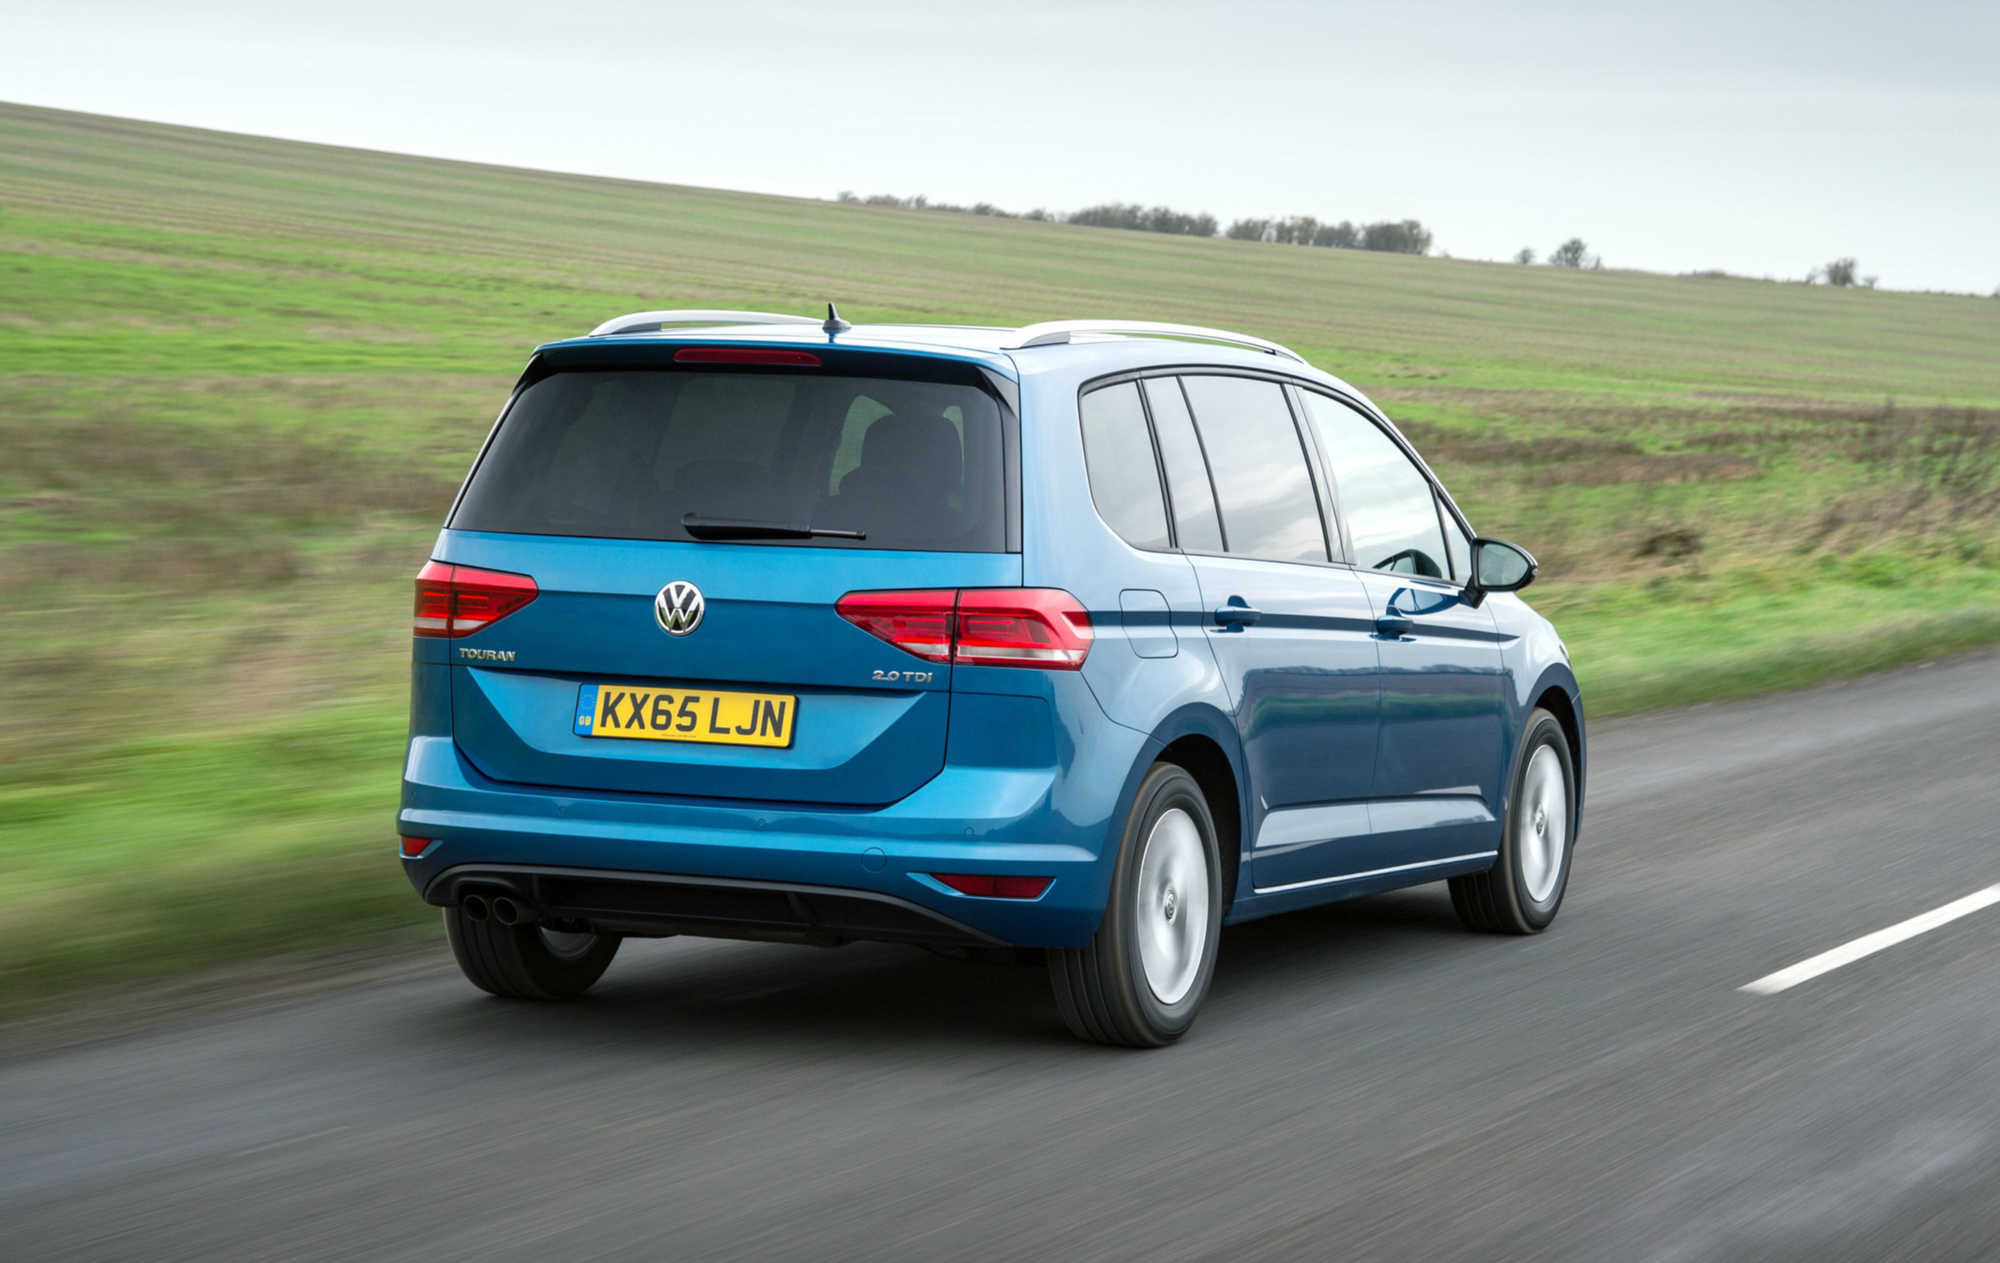 volkswagen touran se family 2 0 litre tdi 150 dsg mpv review car keys. Black Bedroom Furniture Sets. Home Design Ideas